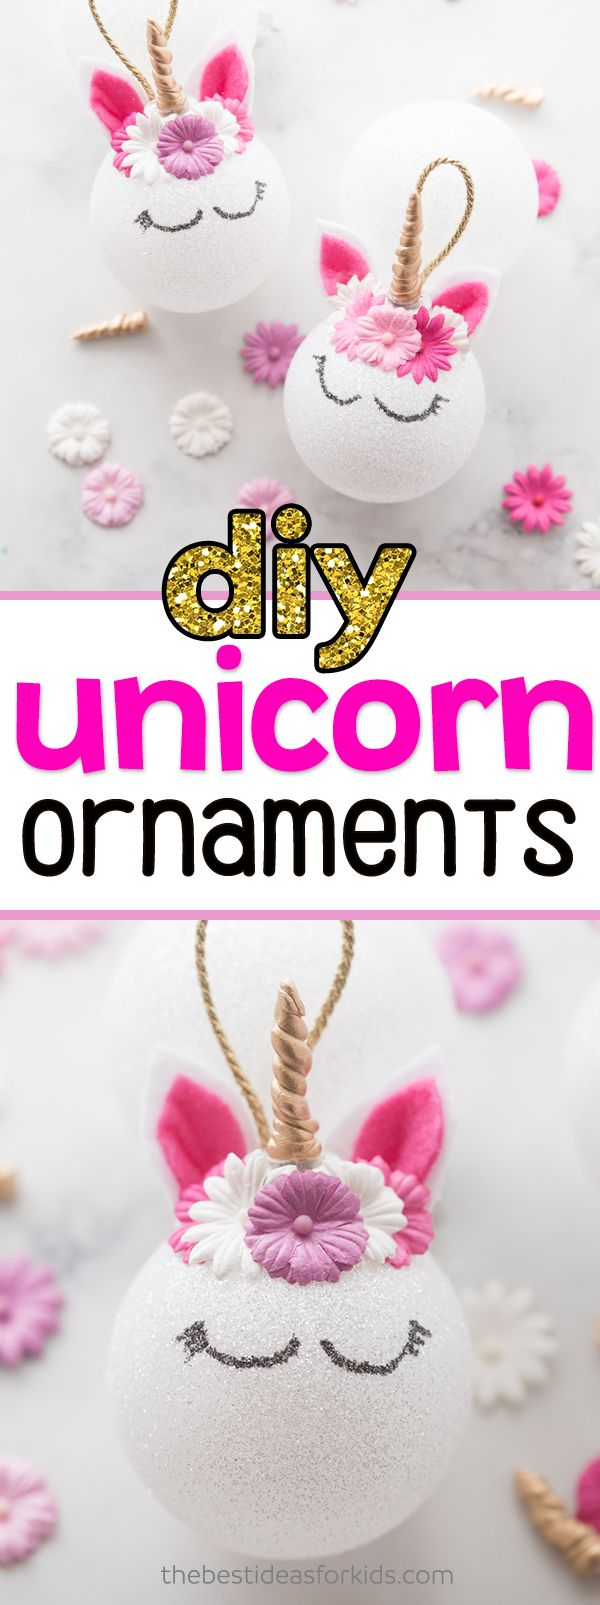 Unicorn Ornaments for Christmas - this DIY tutorial is so easy to do! Love the way these unicorn christmas ornaments turned out! #unicorn #christmas #christmastree #ornaments #kidscrafts